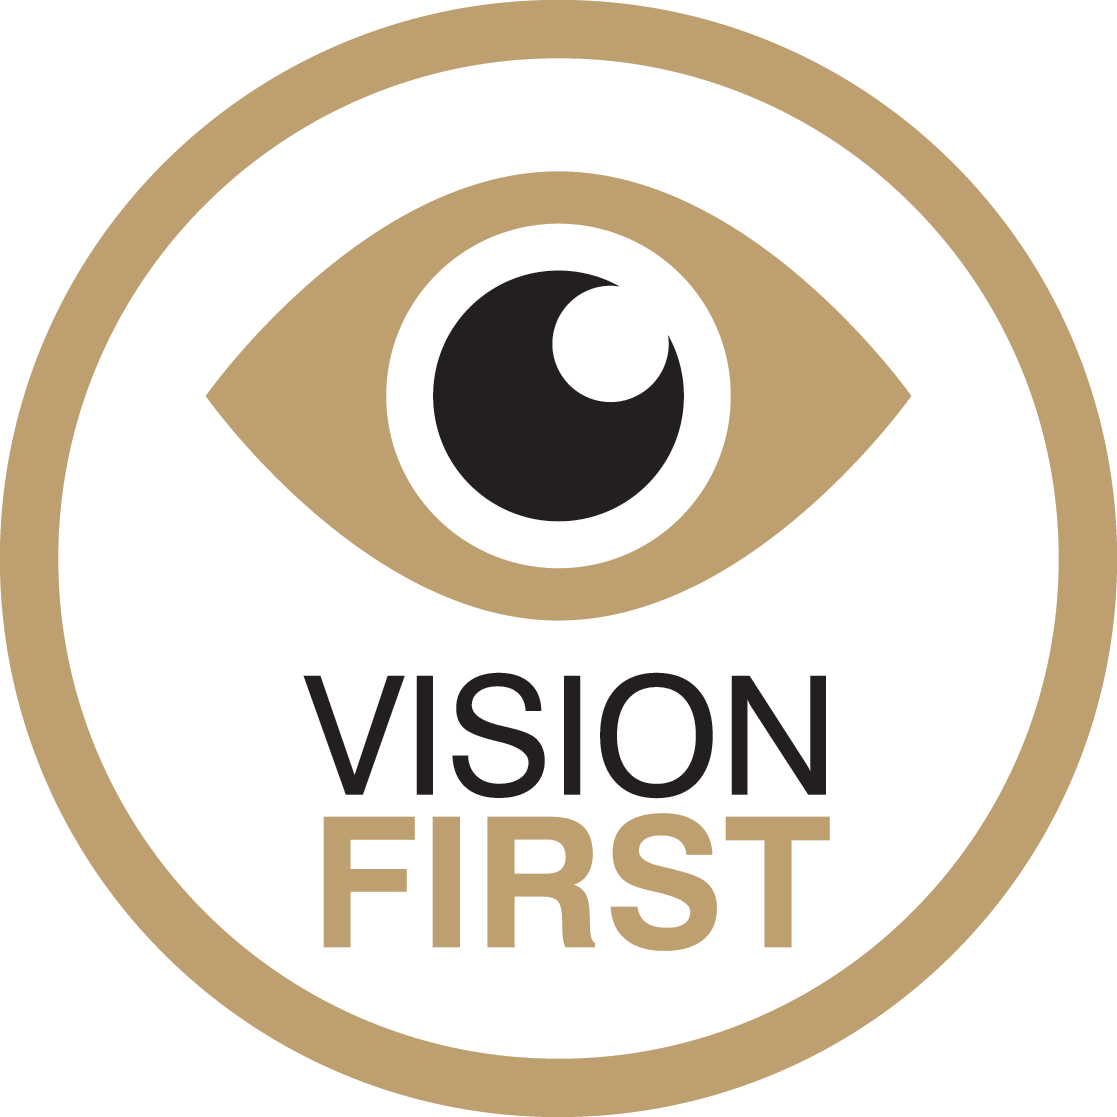 Vision First